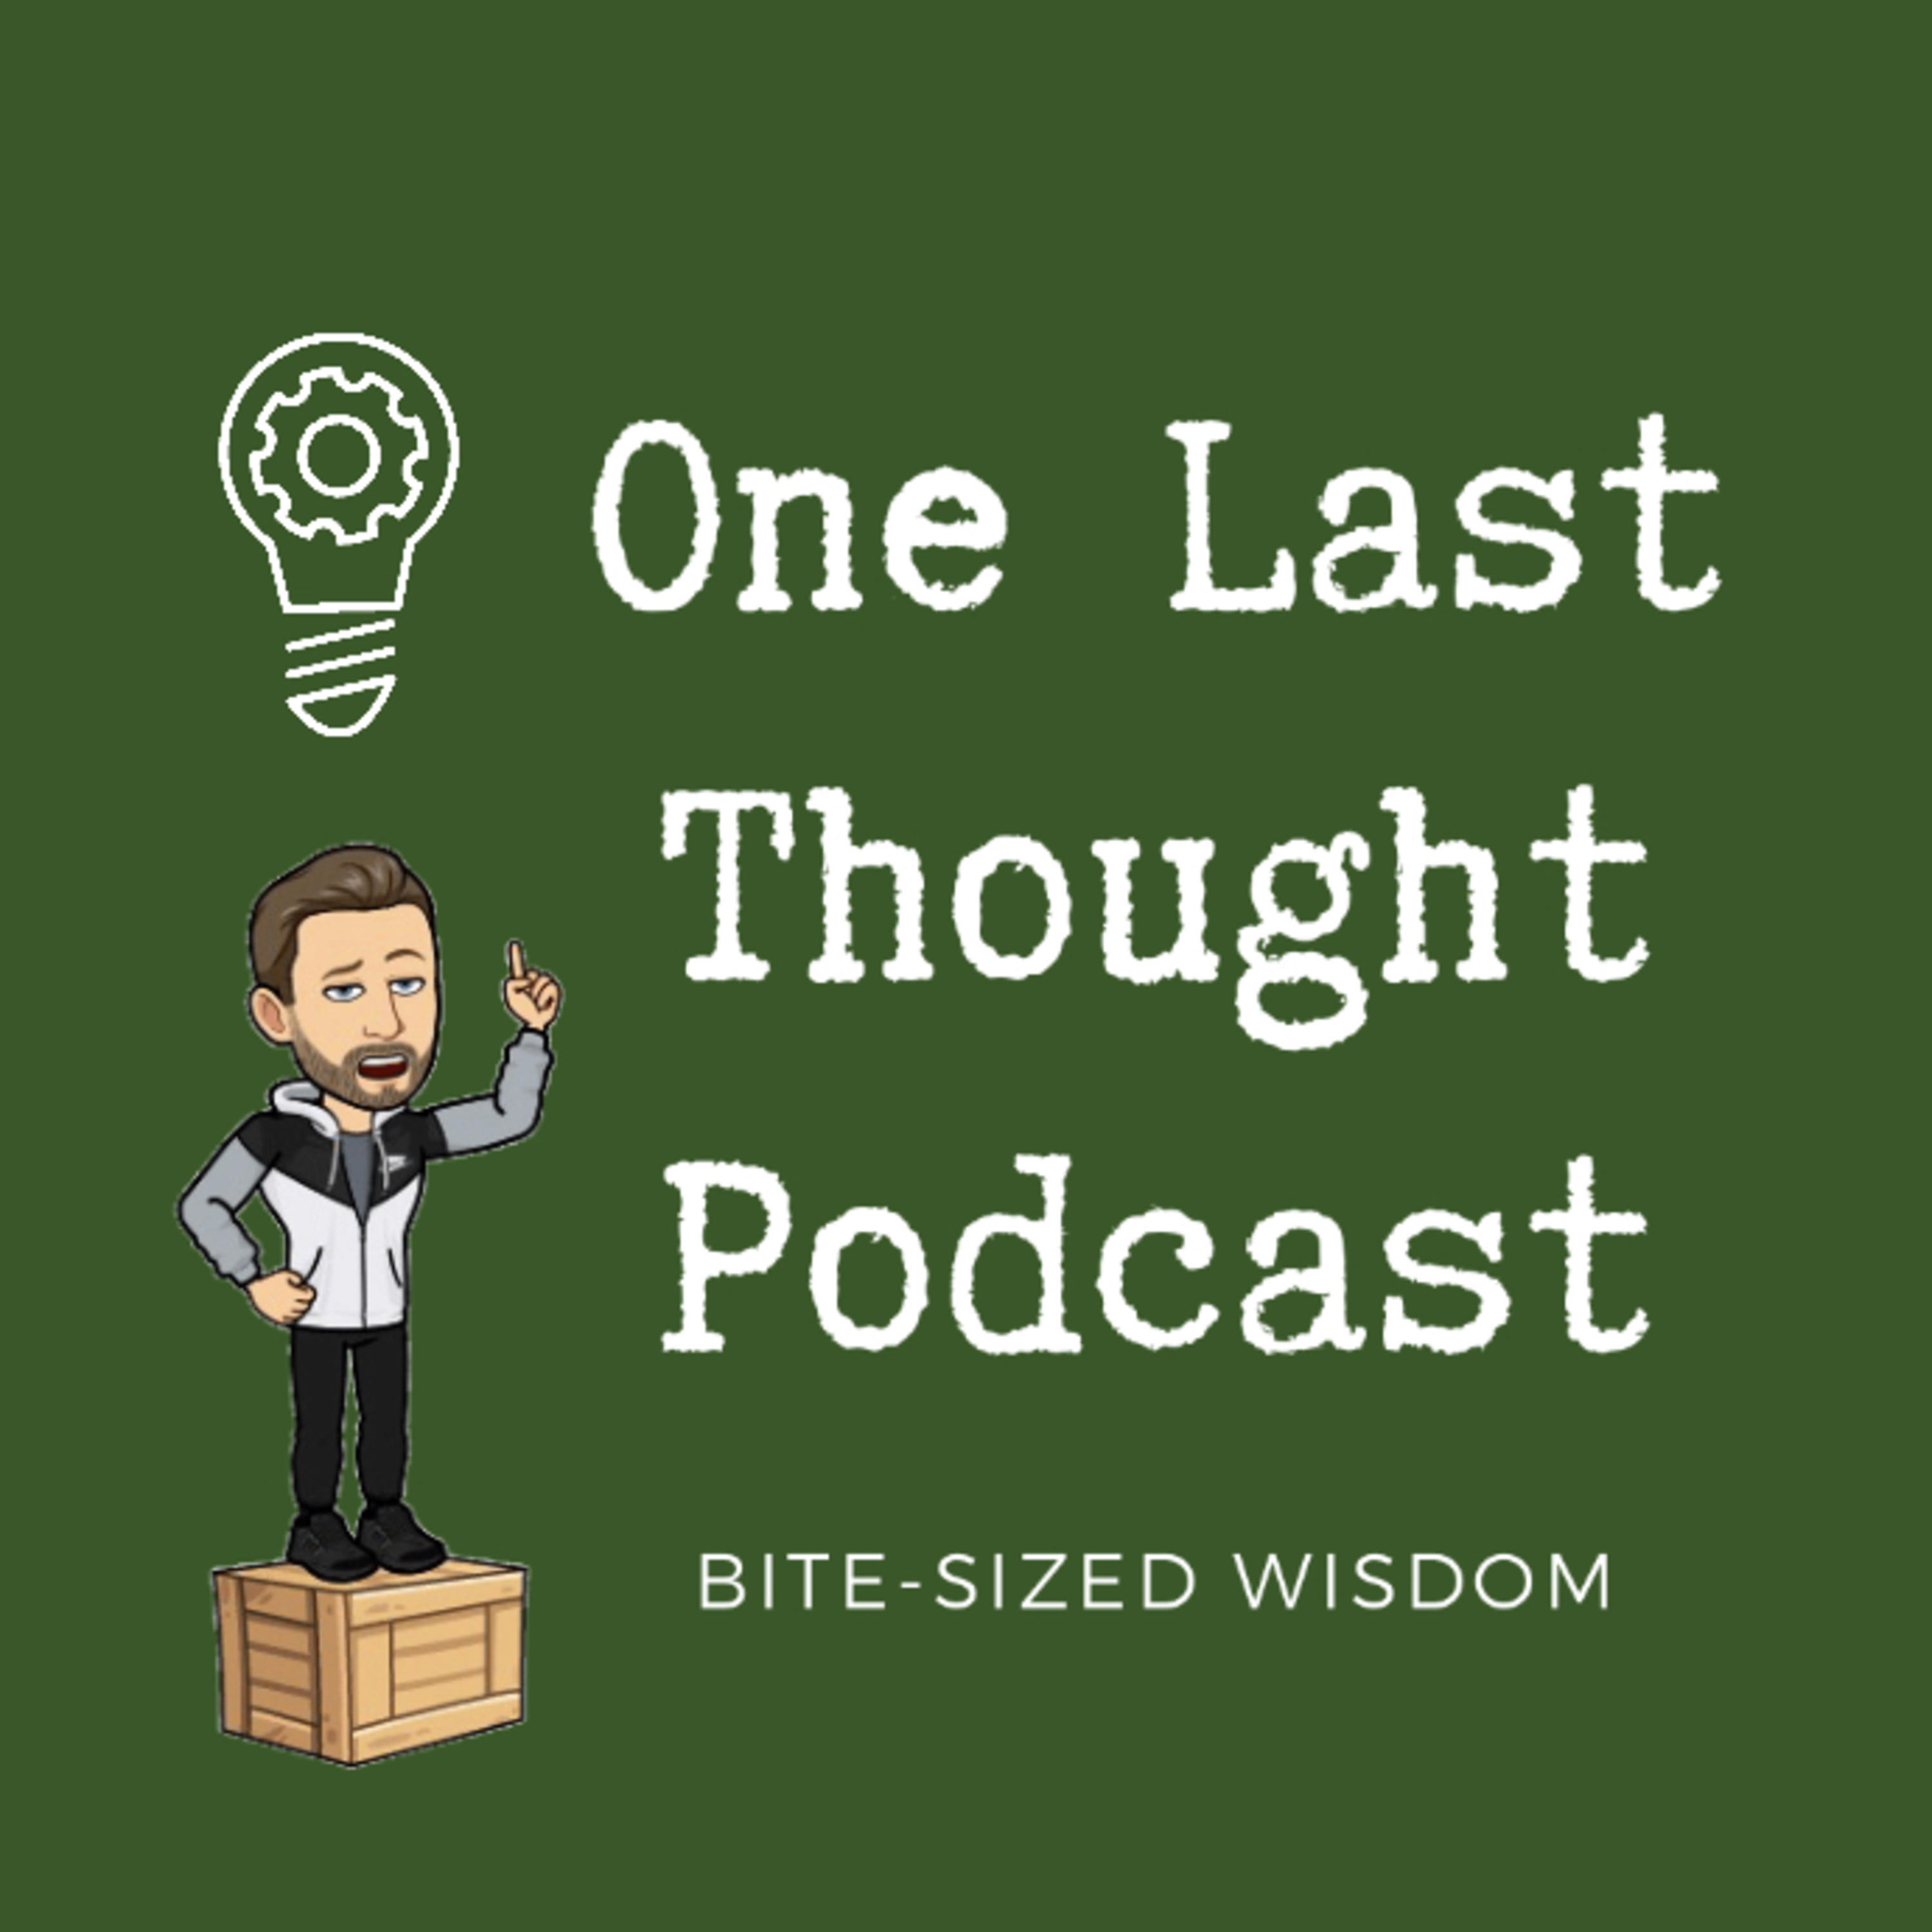 Welcome to the One Last Thought Podcast!